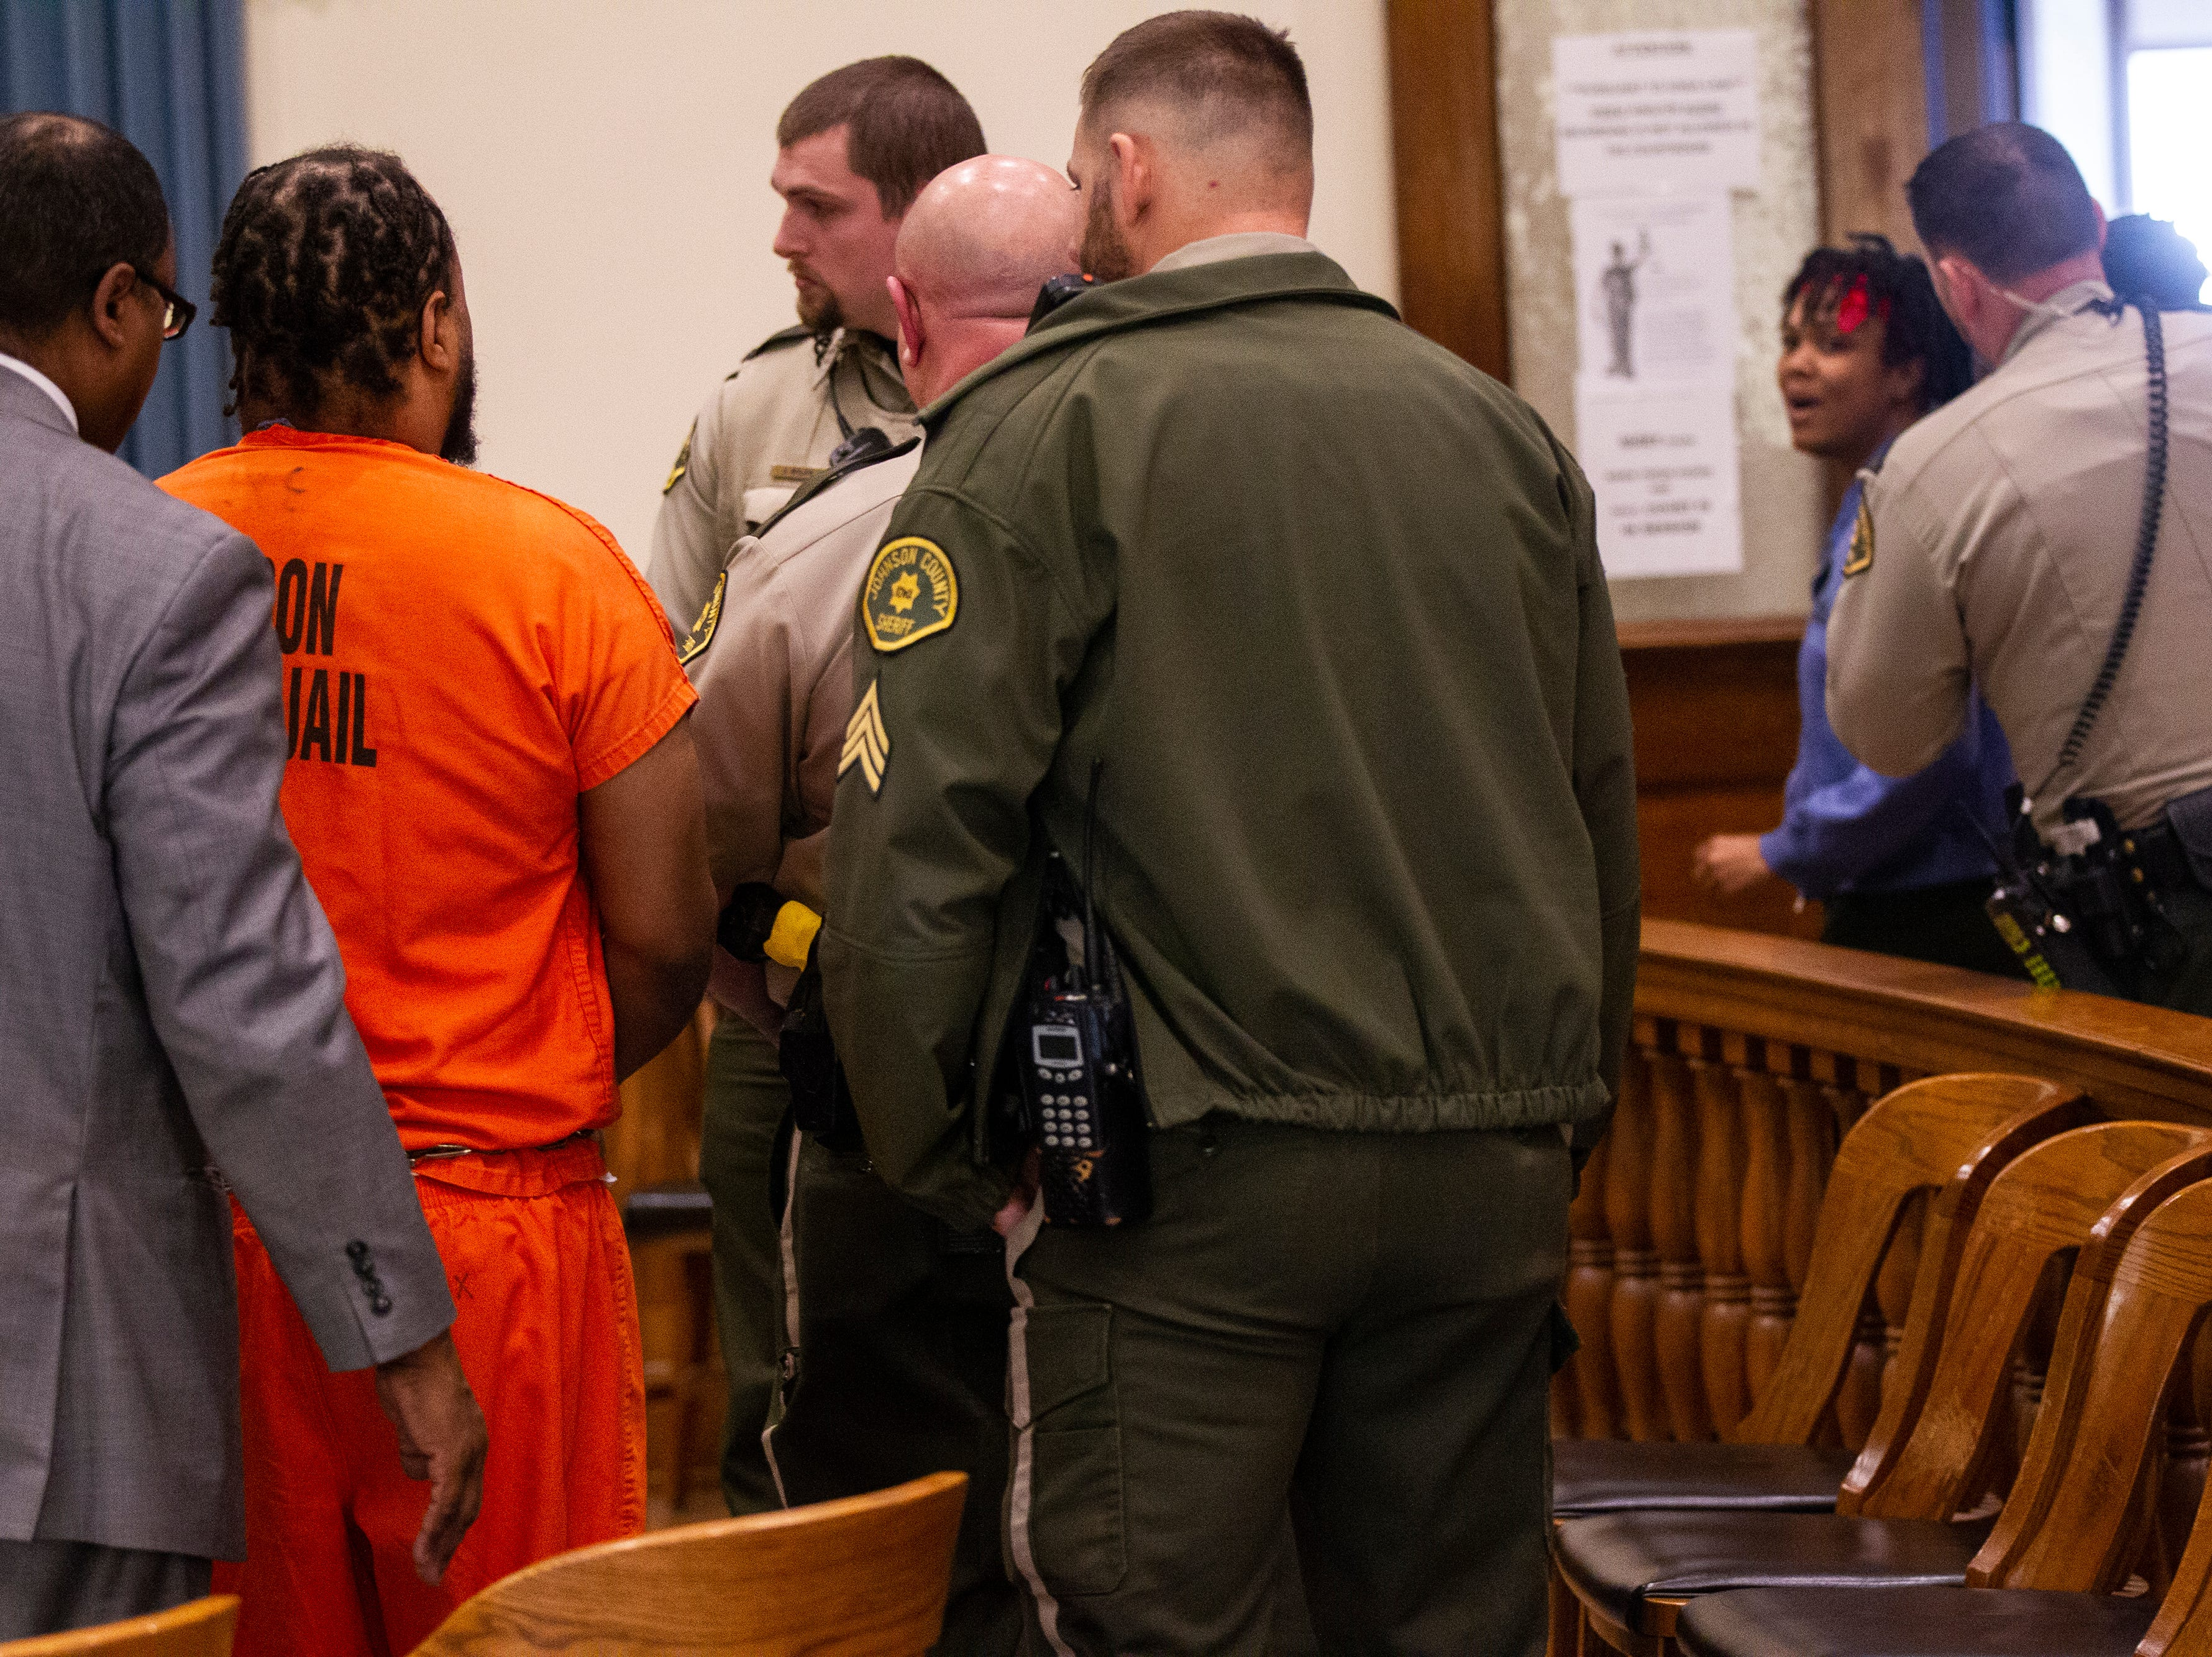 Curtis Cortez Jones walks out of the courtroom after reading a statement claiming his innocence as a family member is ushered away by a sheriff deputy during a sentencing hearing for the murder of Ricky Ray Lillie on Friday, Jan. 4, 2019, at the Johnson County Courthouse.